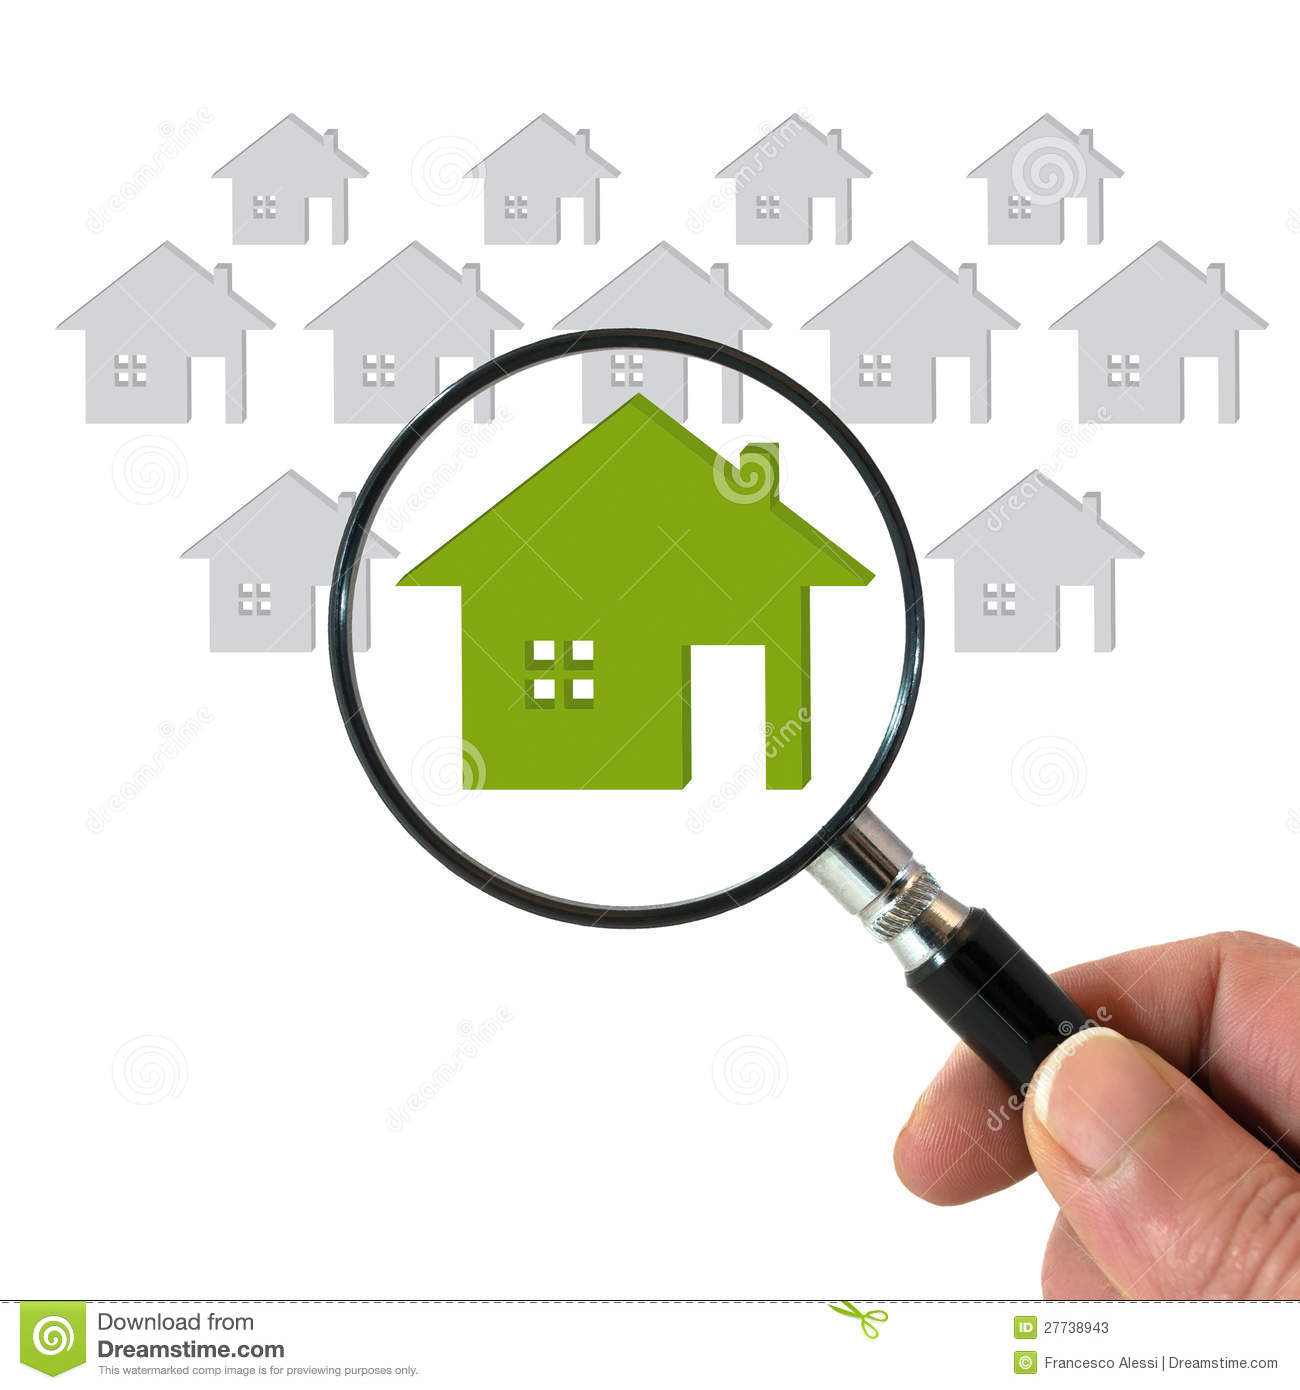 6dffcf115d03 Searching for house stock image. Image of graphic